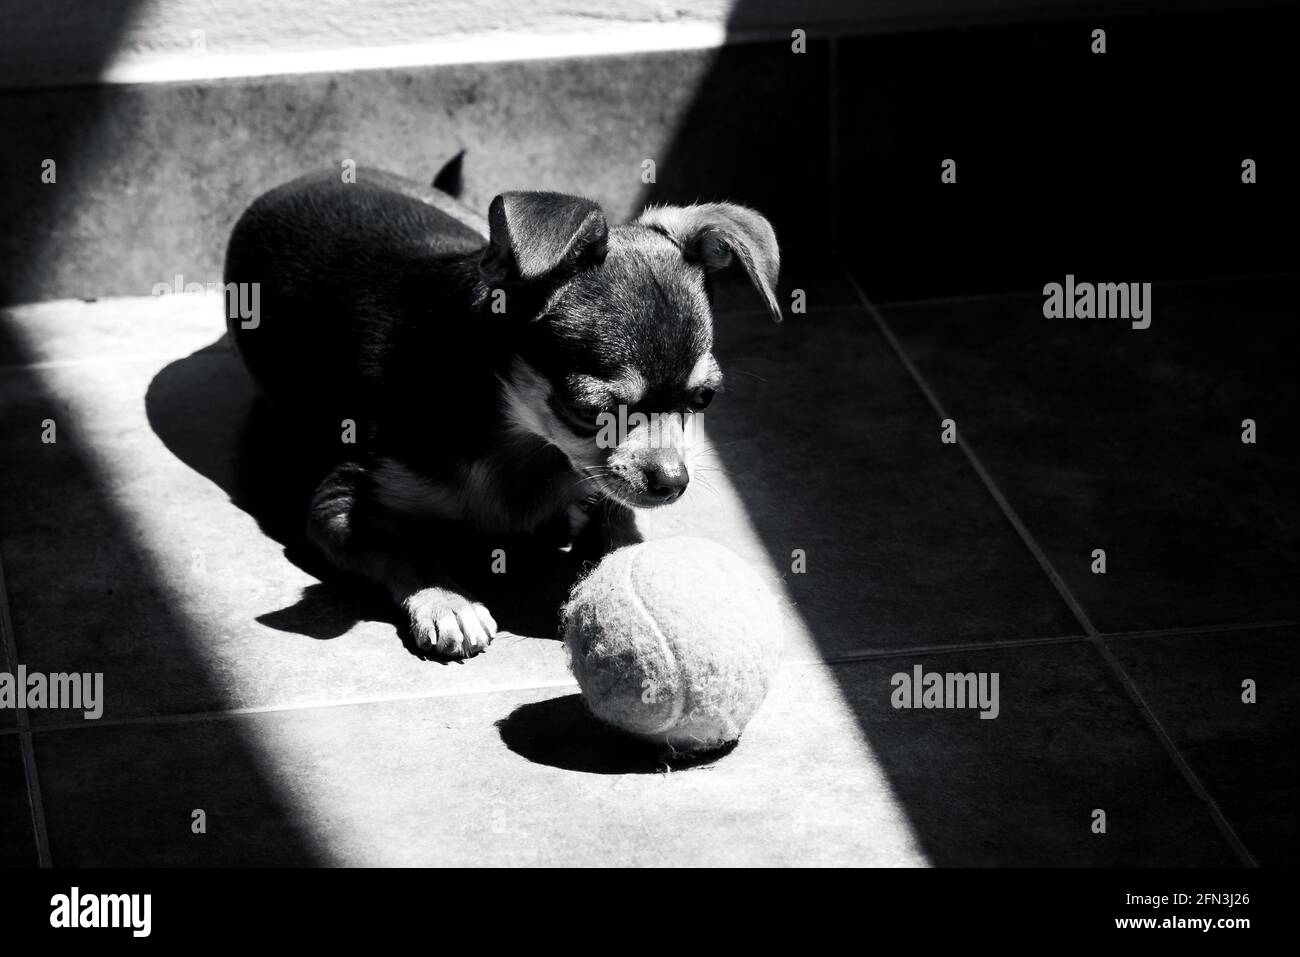 Cute little brown chihuahua dog looking sadly at his tennis ball toy while resting at sunlight in black and white Stock Photo